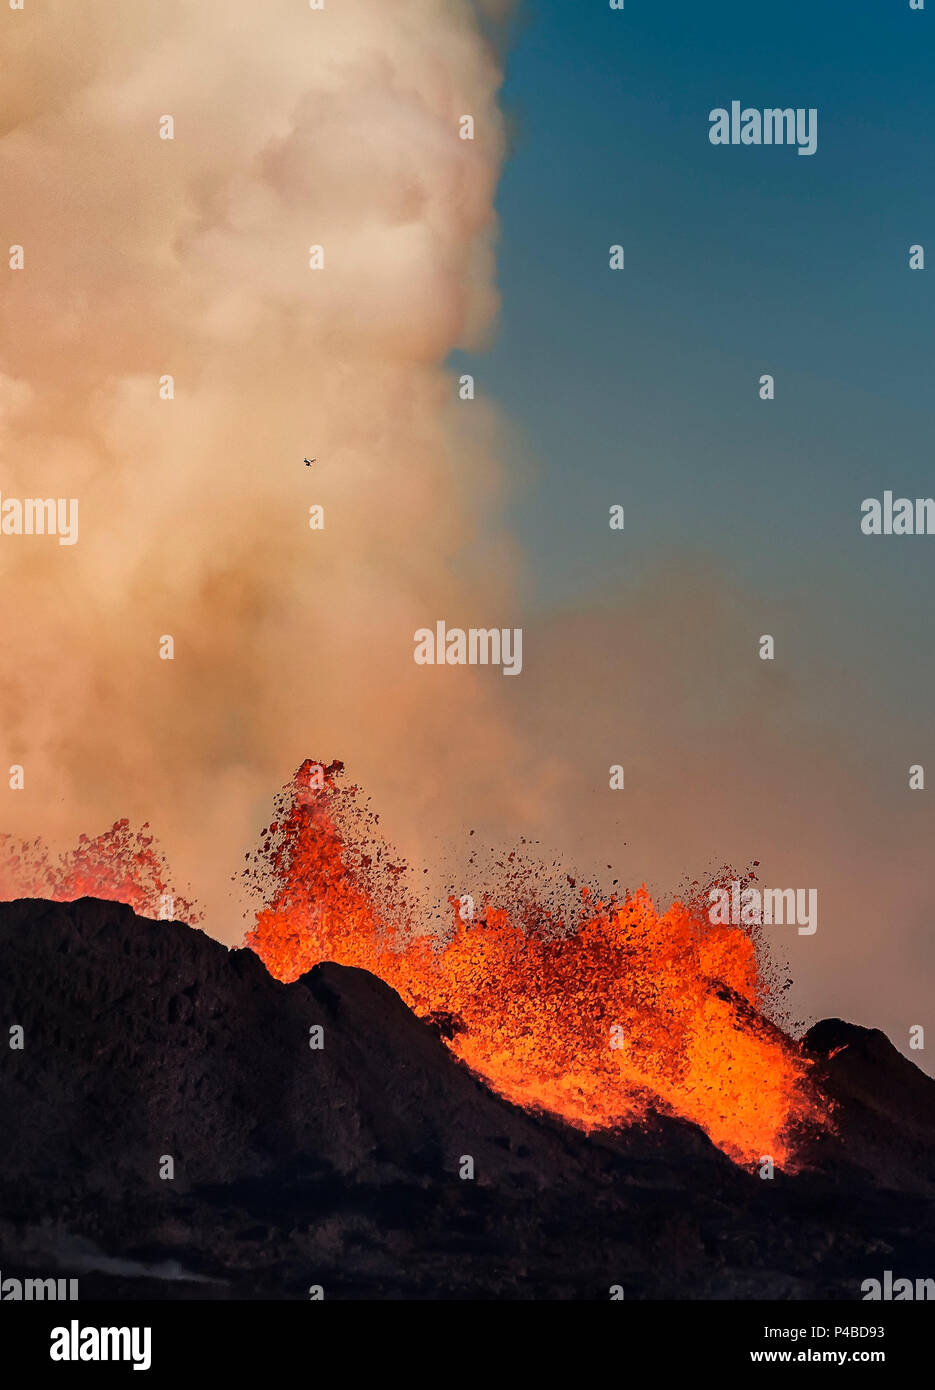 Lava glowing from the eruption at the Holuhraun Fissure. August 29, 2014 a fissure eruption started in Holuhraun at the northern end of a magma intrusion, which had moved progressively north, from the Bardarbunga volcano. Picture Date: Sept 20, 2014 Stock Photo